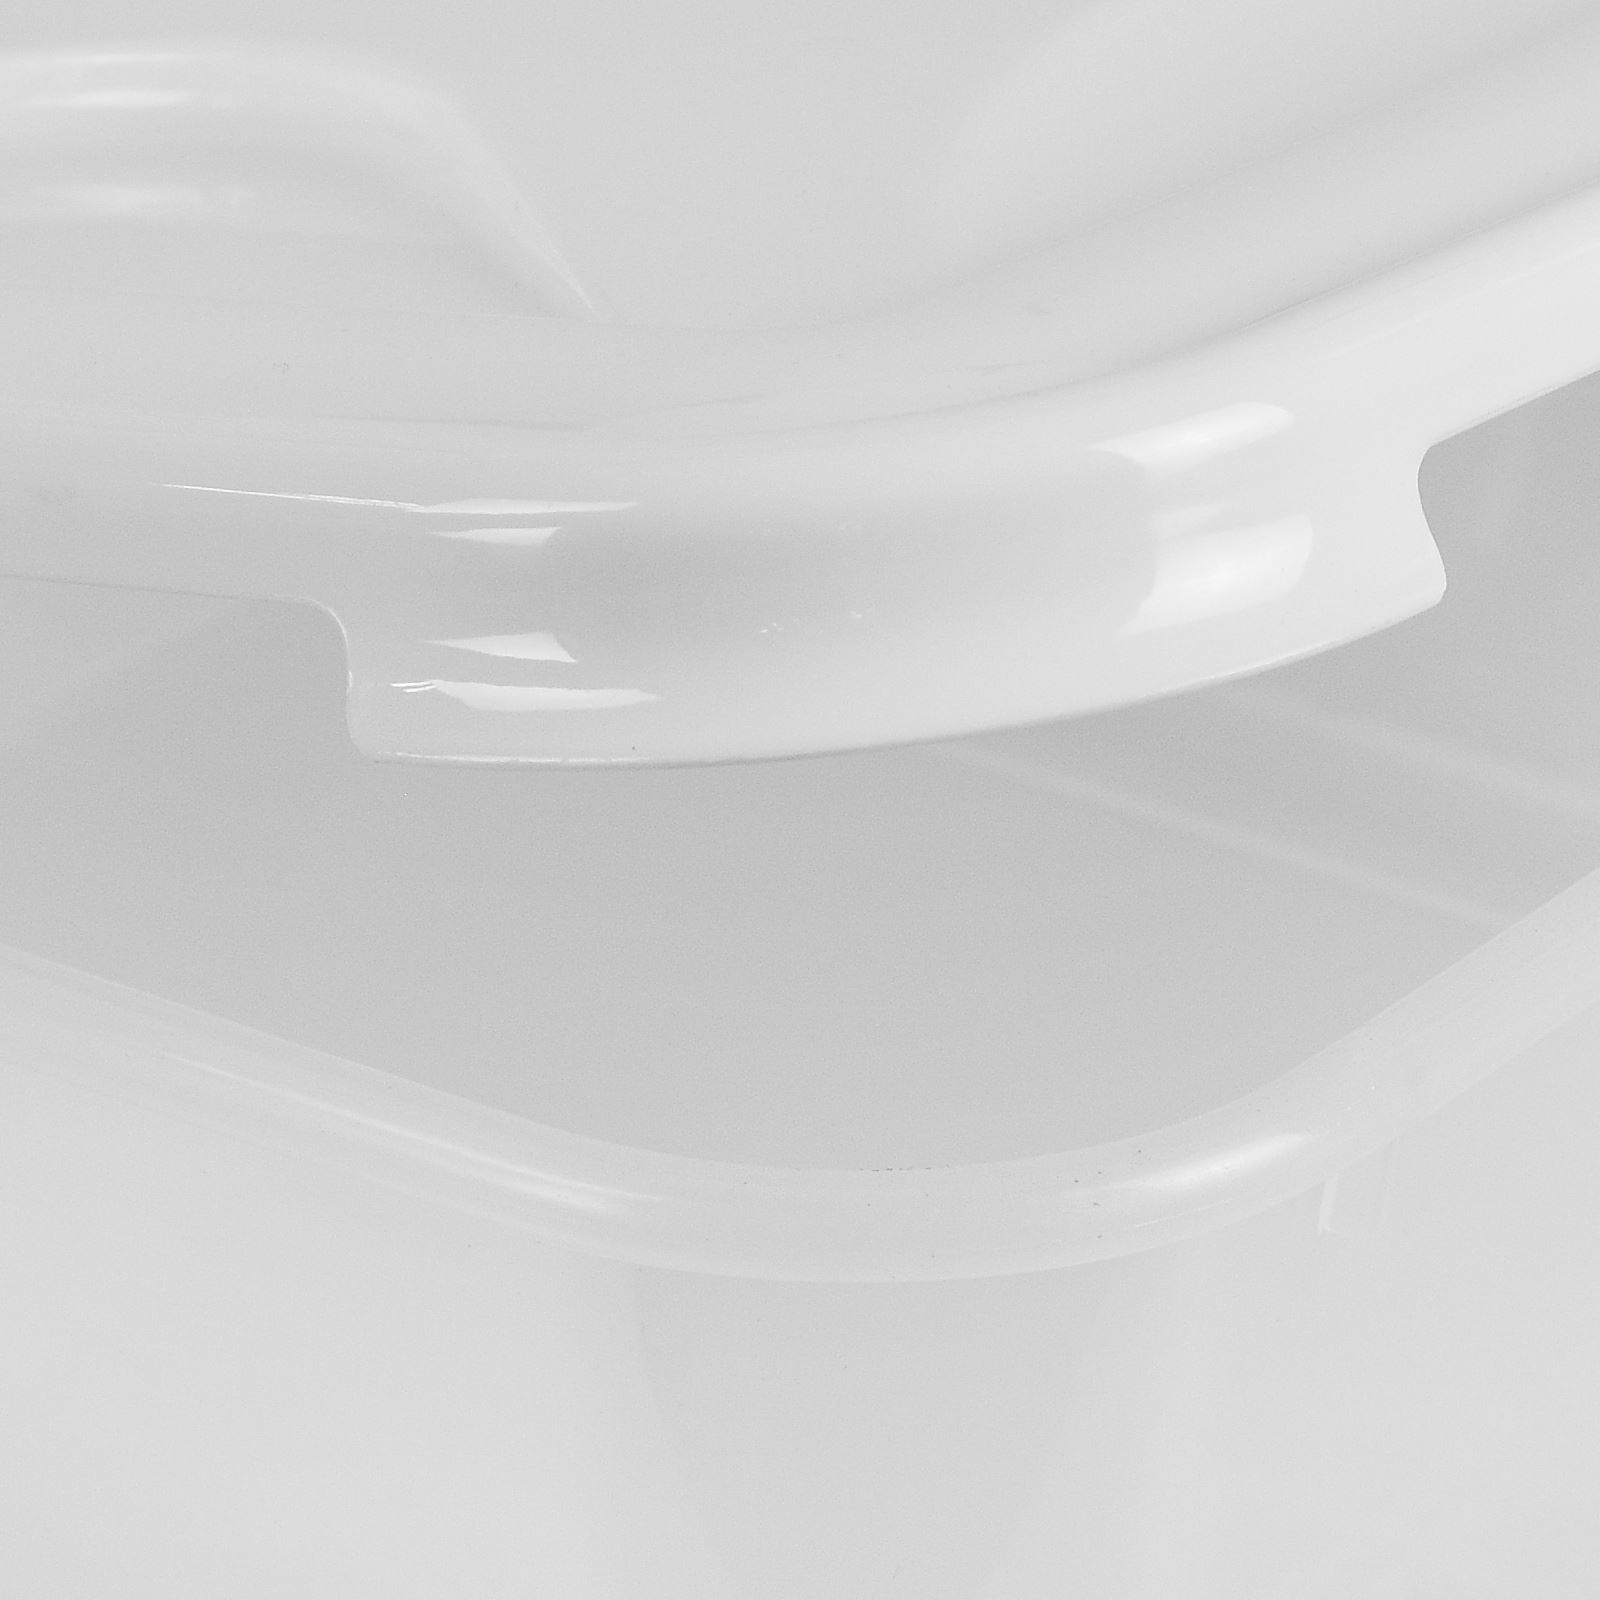 Wham-Plastic-Food-Storage-Shelf-Box-Stackable-Containers-Clear-Secure-Clip-Lid thumbnail 7